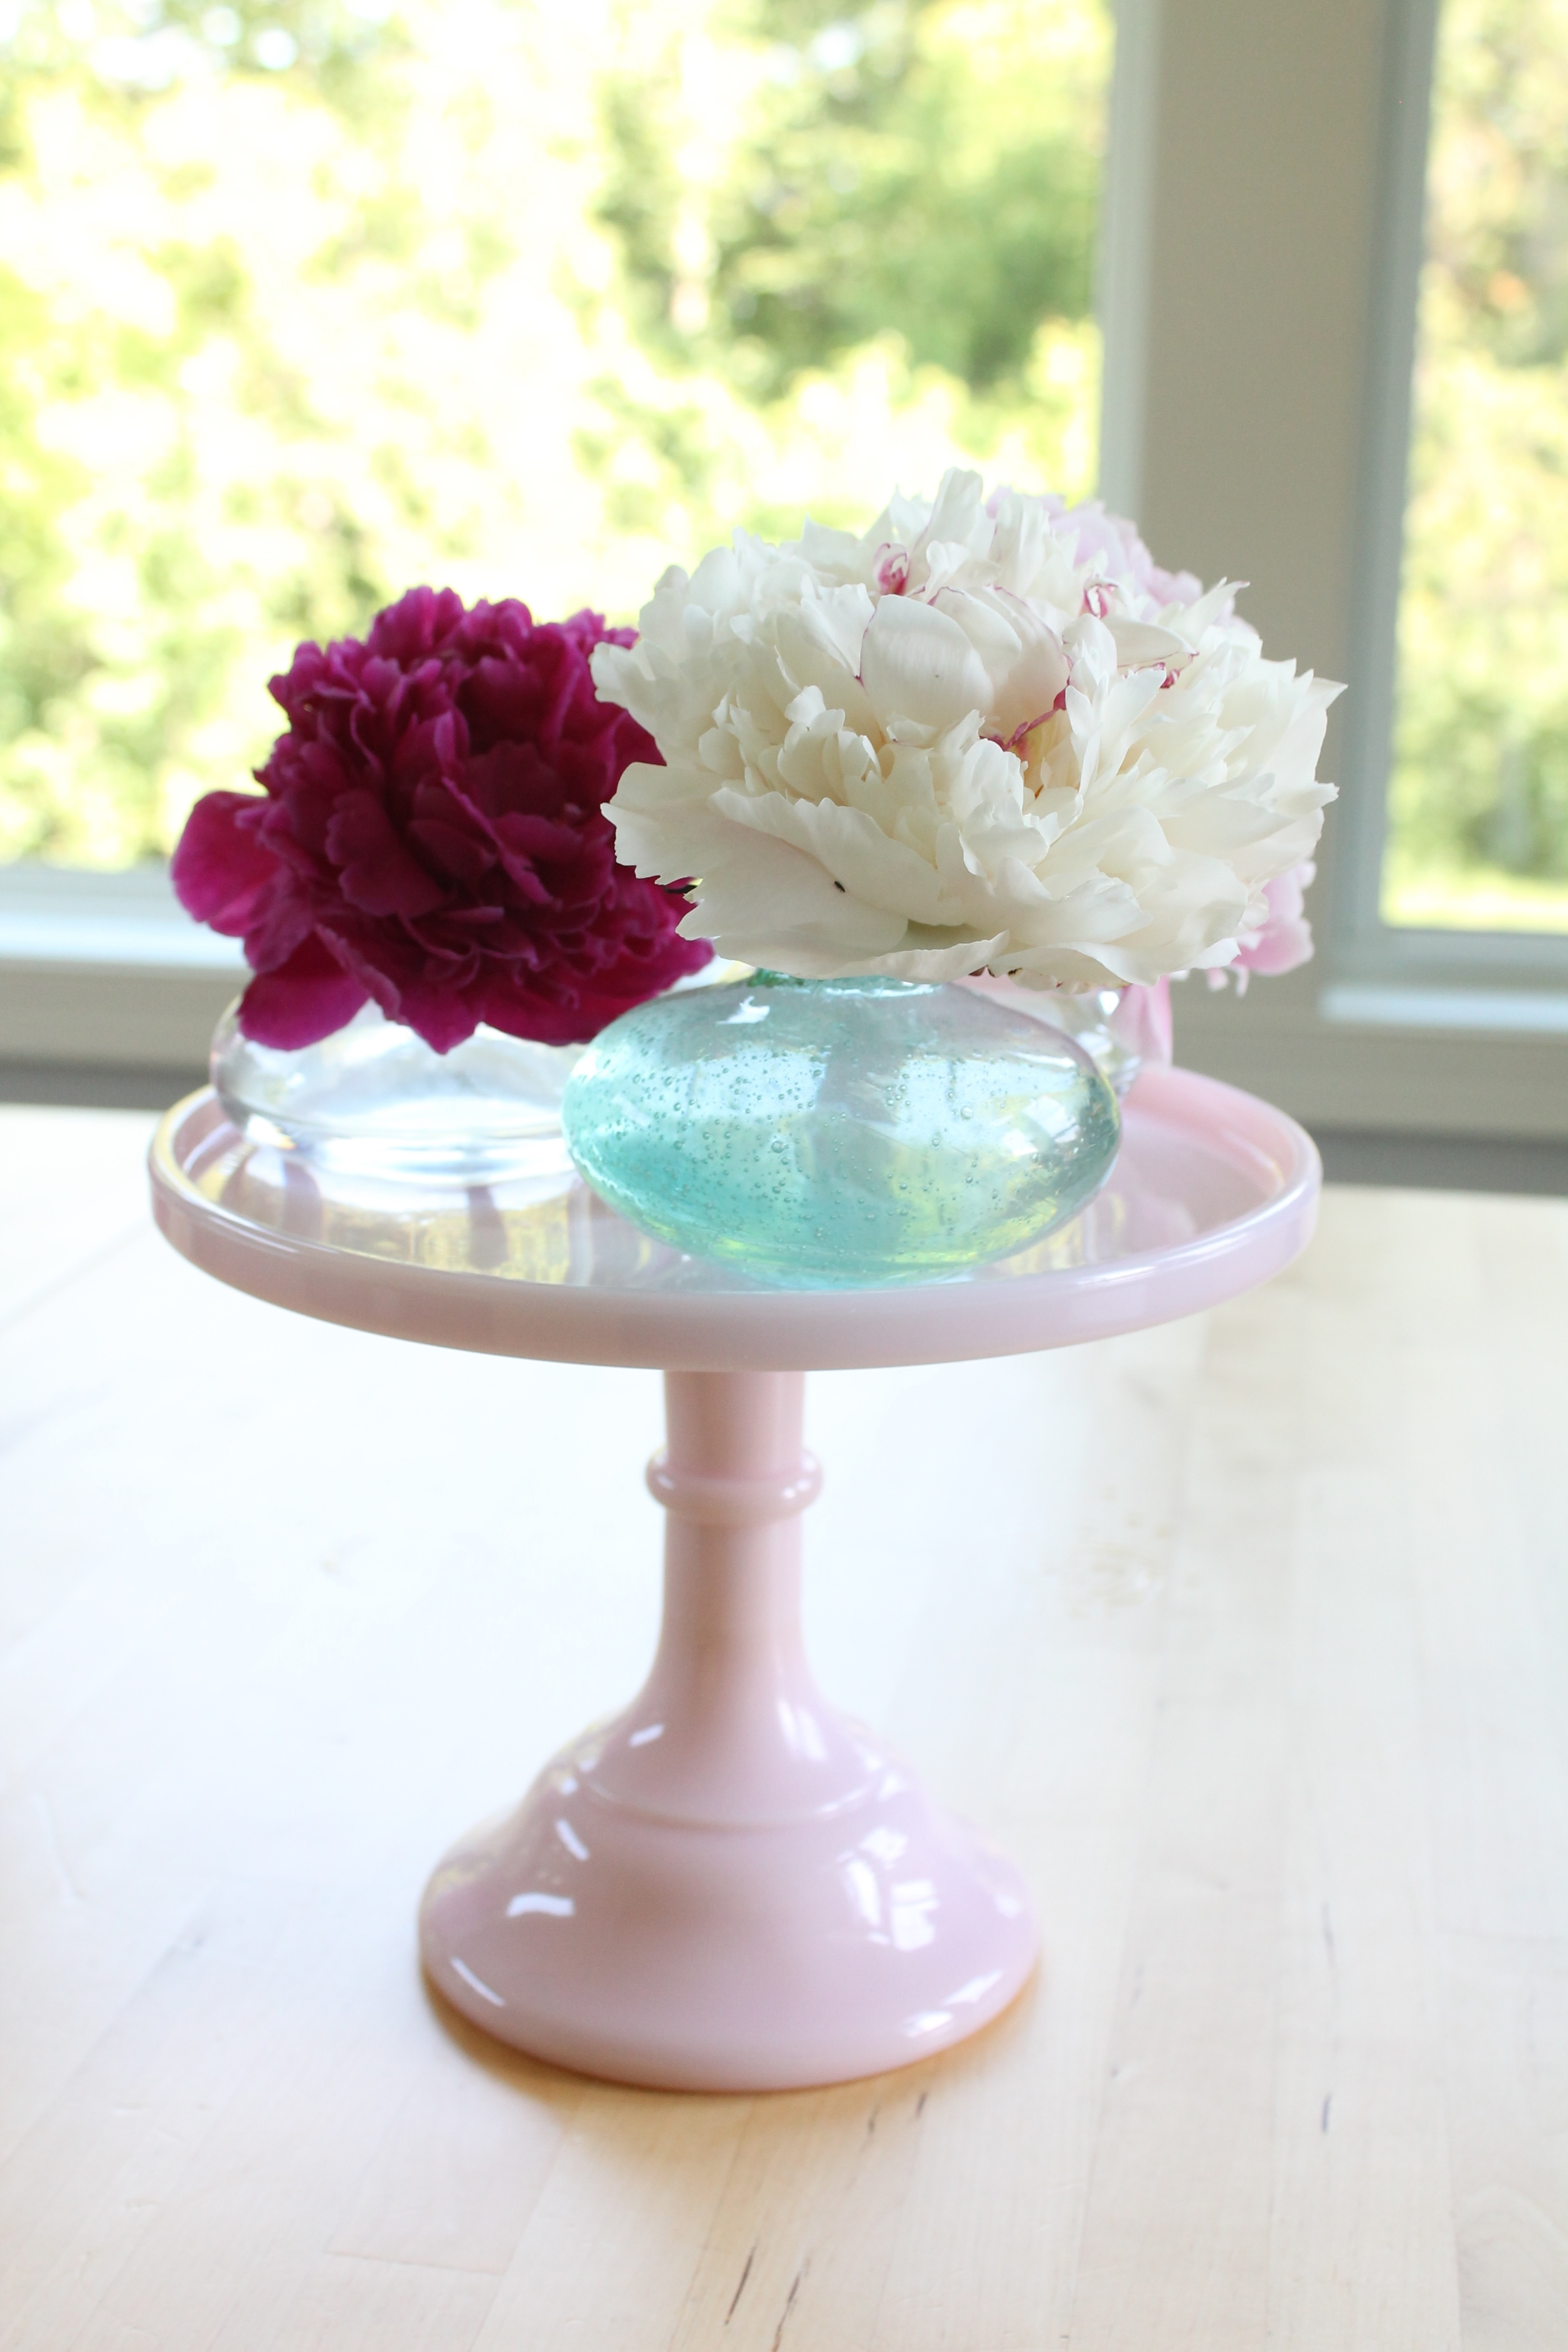 Peonies in bud vases on a pink cake plate.